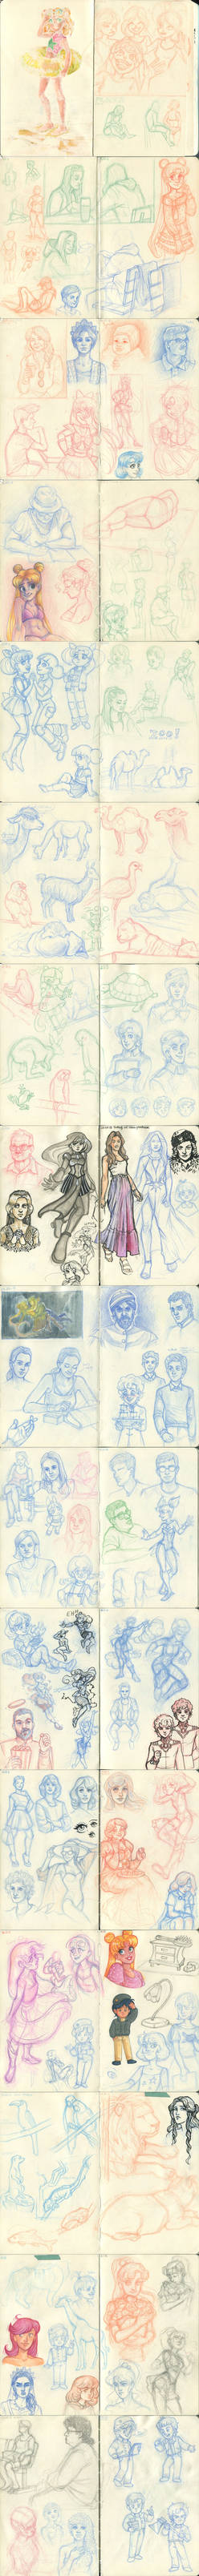 My sketchbook 47